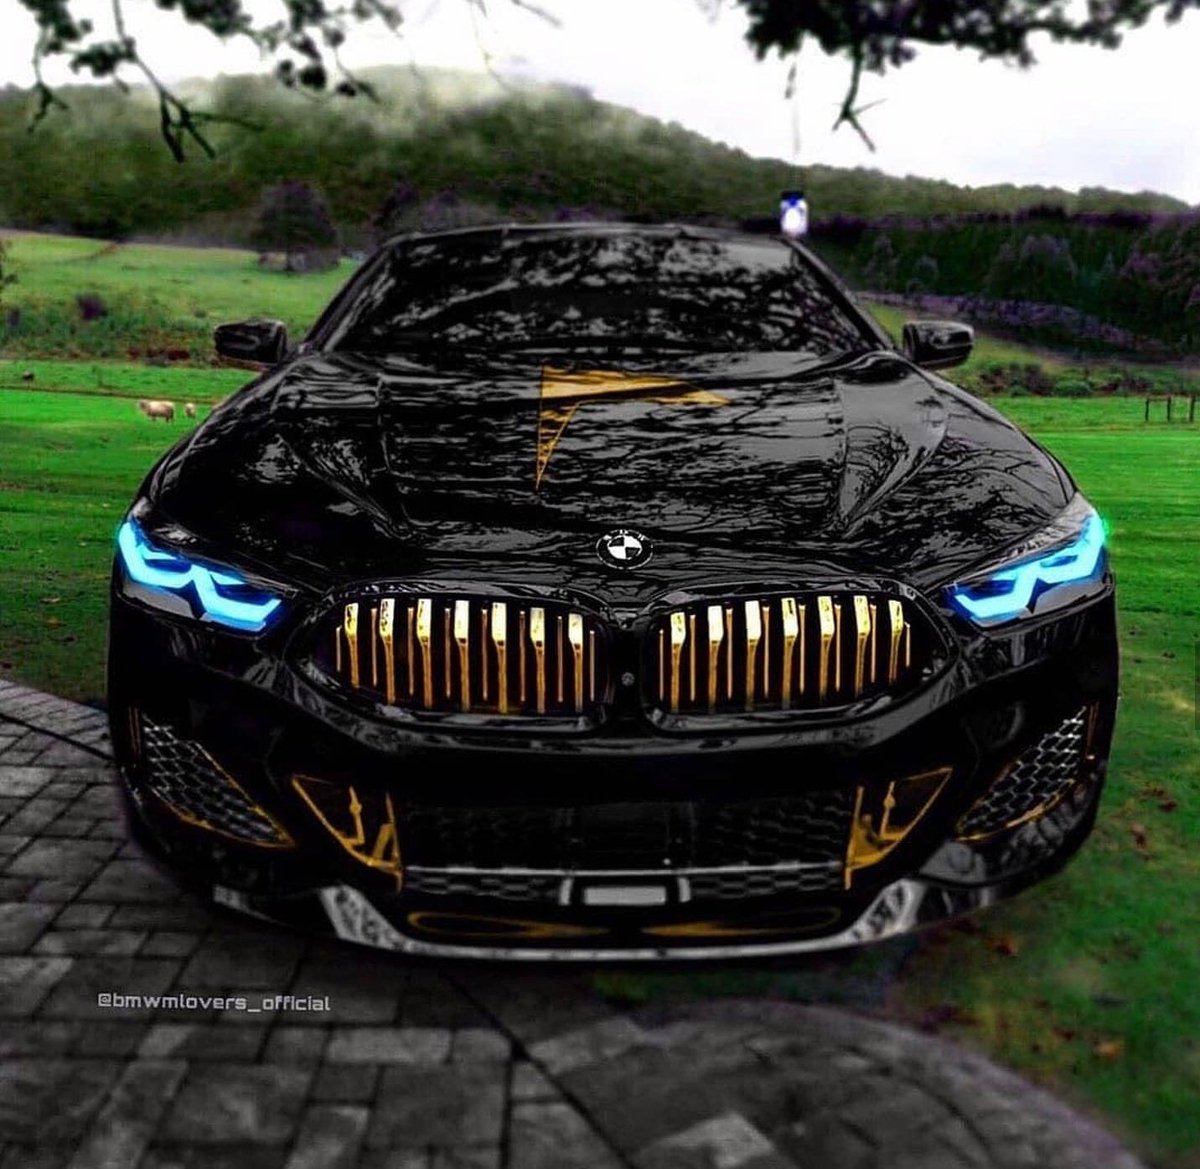 Cool BMW. https://t.co/eooVNh45dn